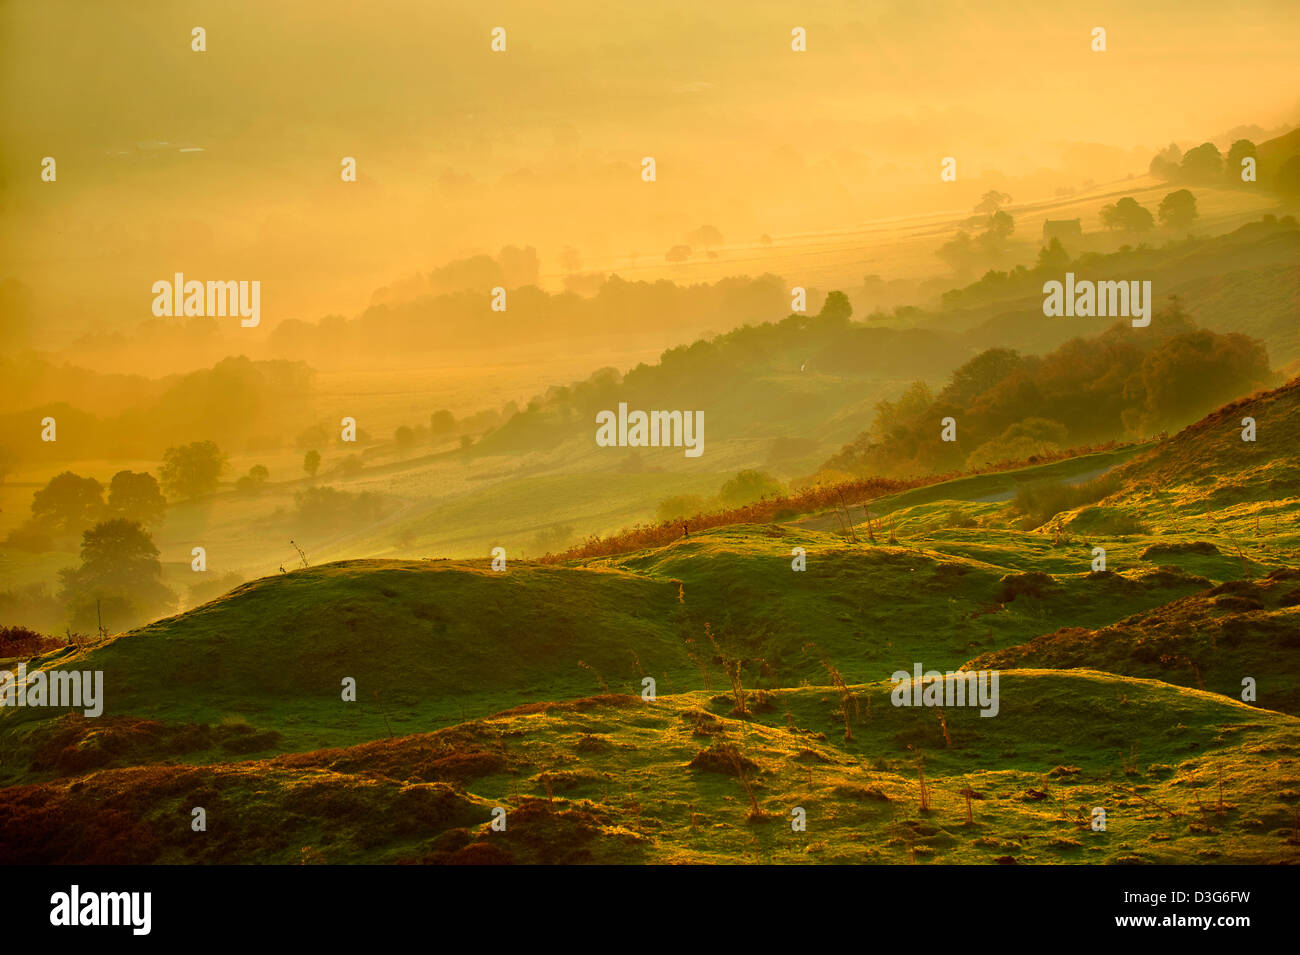 Sunrise over Rosedale viewed from Chimney Bank, North Yorks National Park, North Yorkshire, England - Stock Image